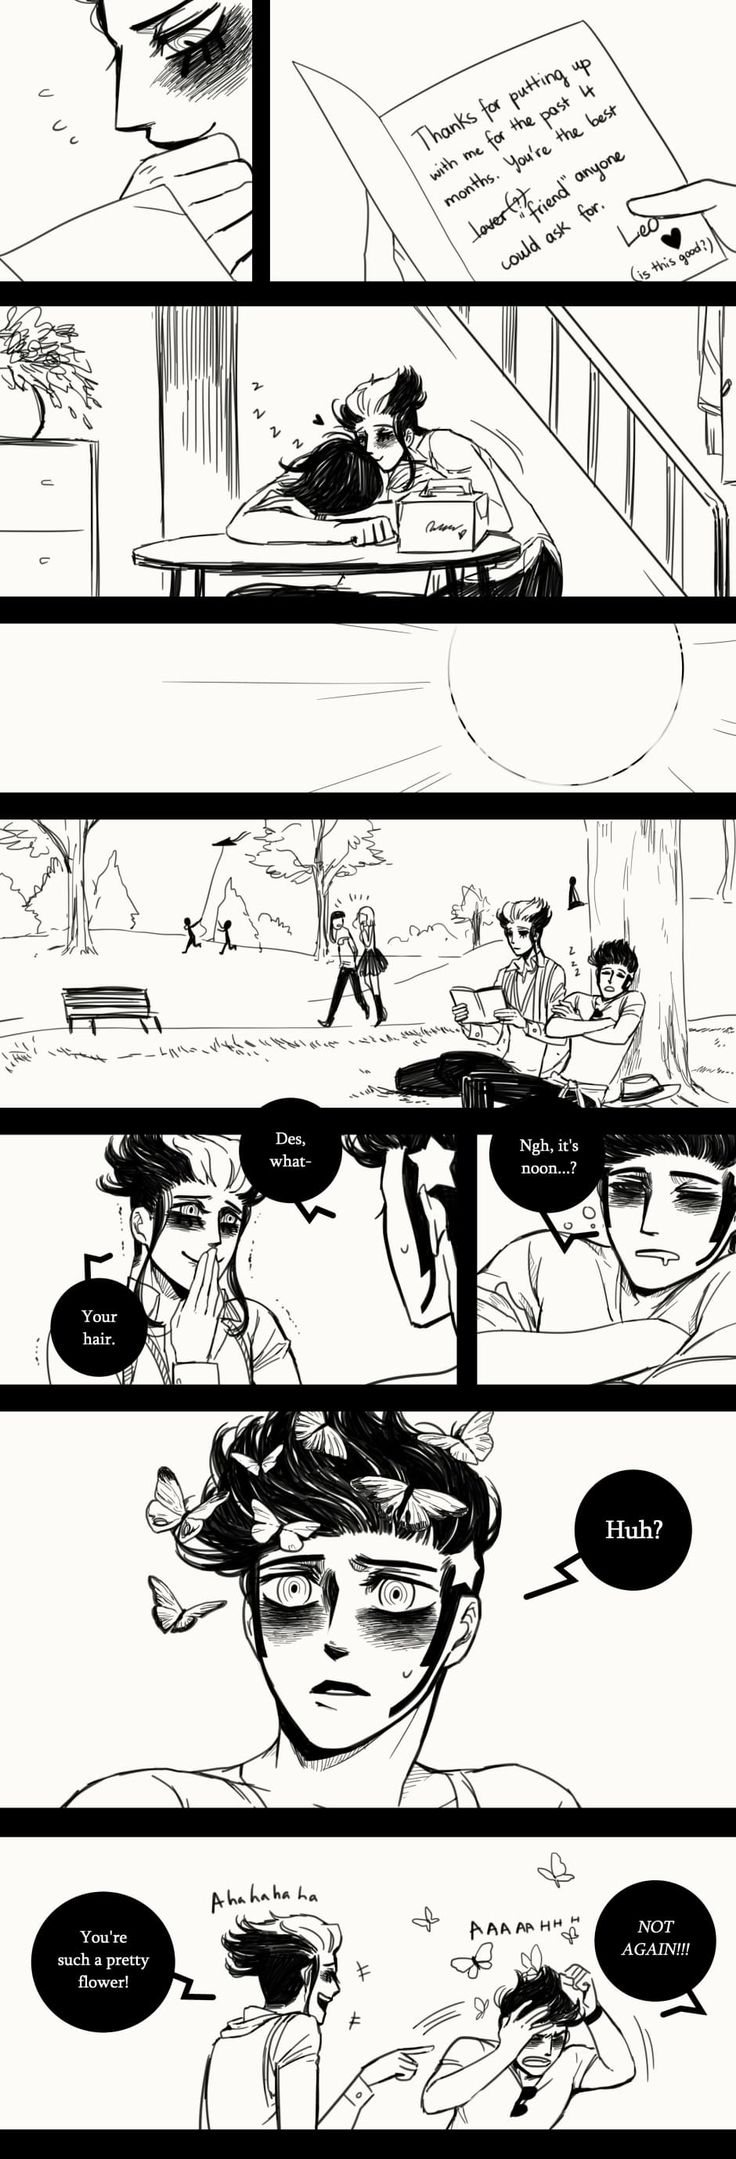 A Matter of Life and Death :: Special Episode: 1 Year Anniversary (Part 3)   Tapastic Comics - image 4